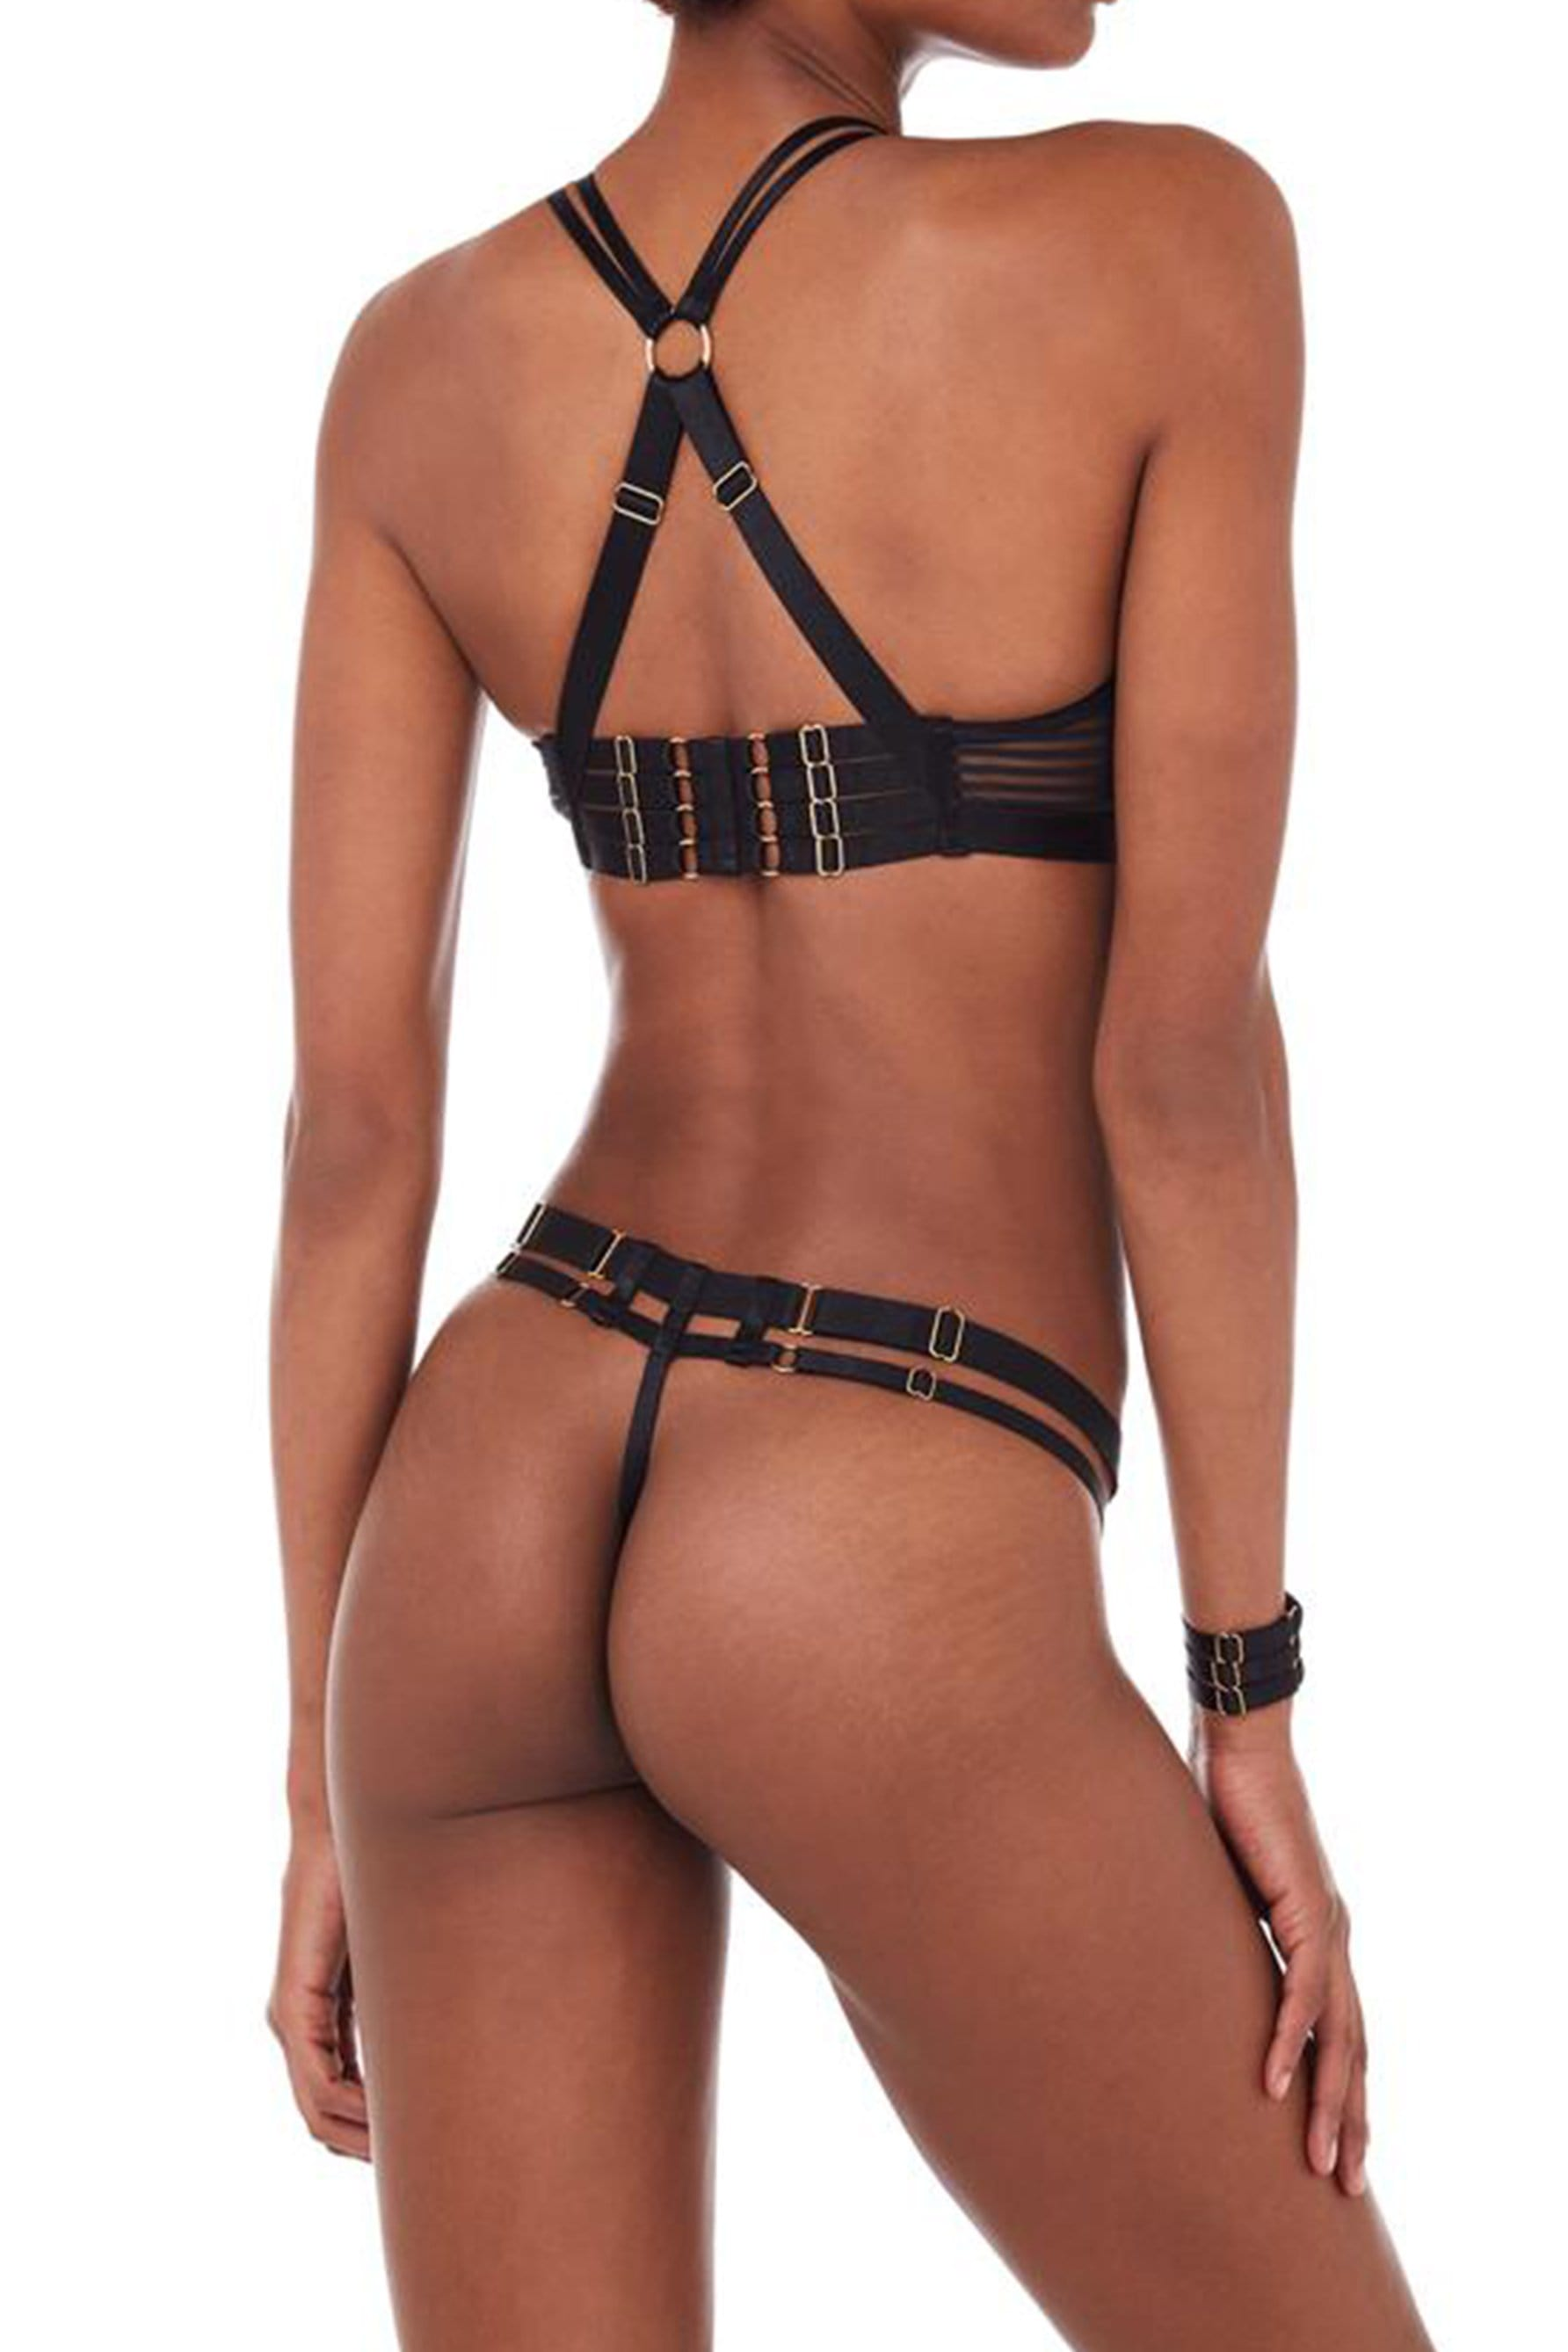 Bordelle Scala Black Mesh Strappy Thong